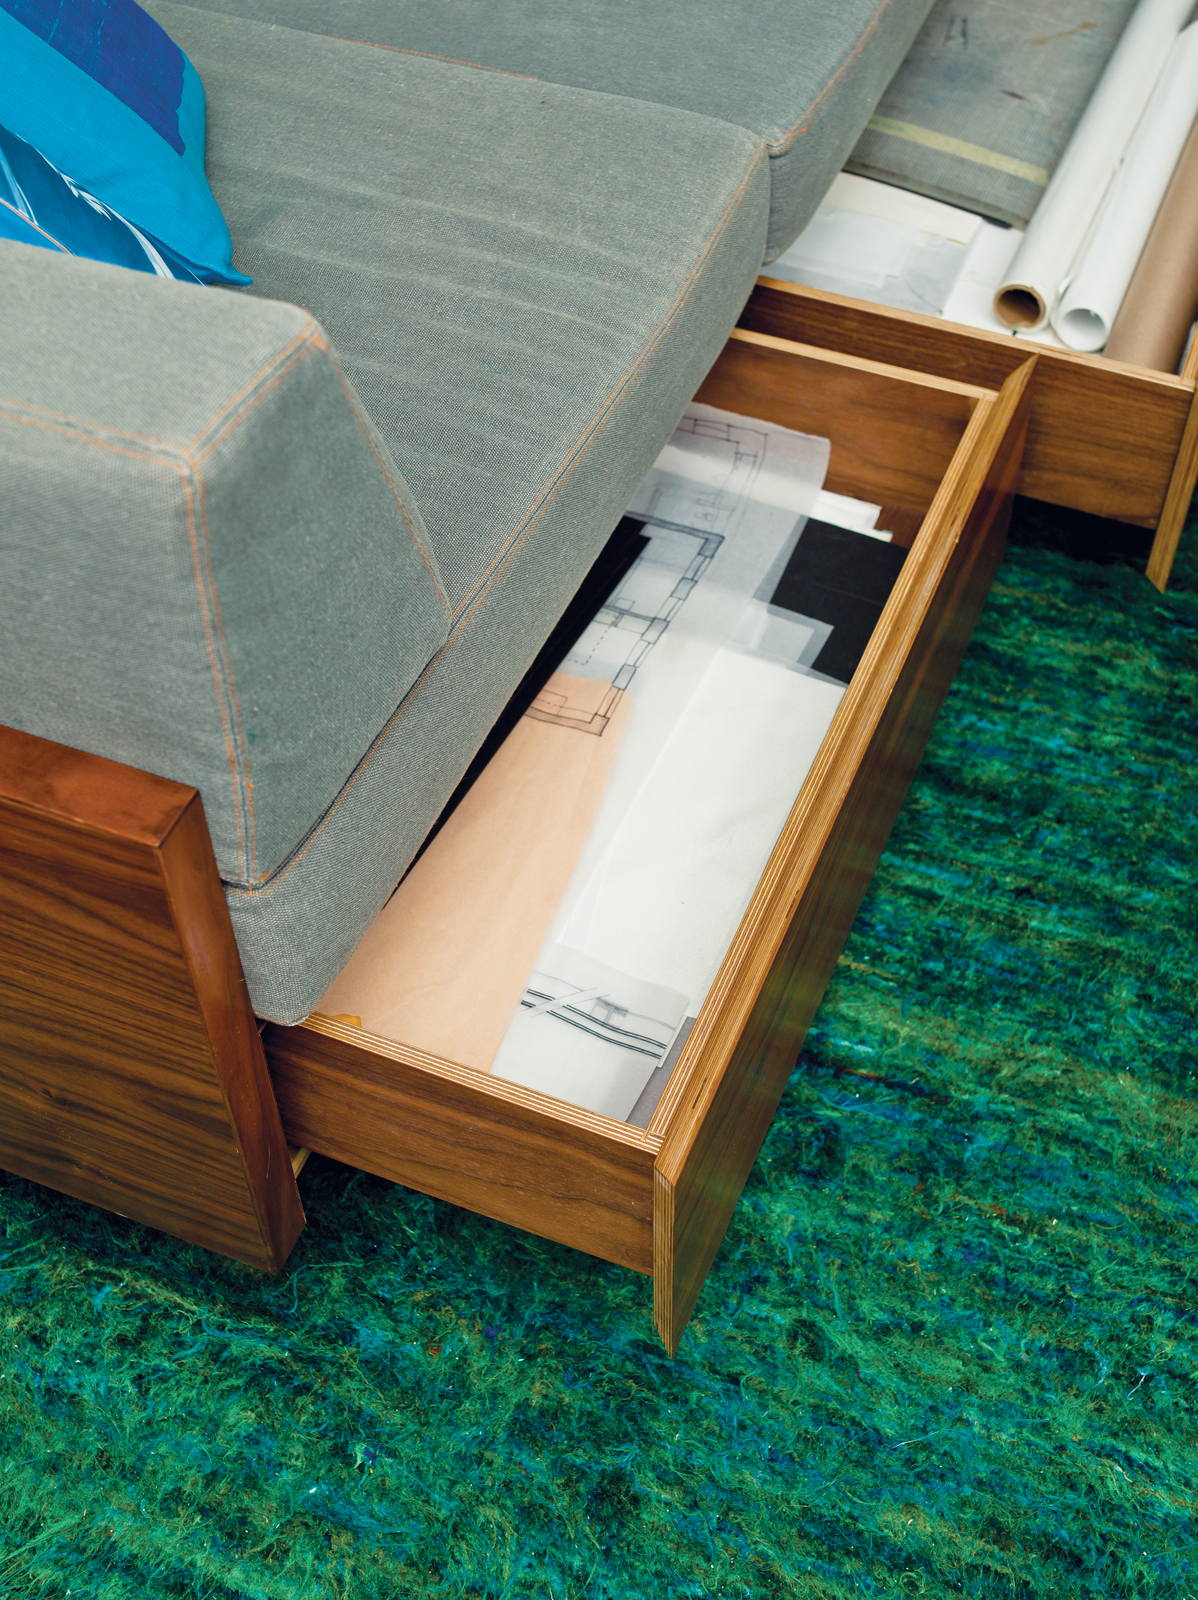 Built-in storage drawers in sofa